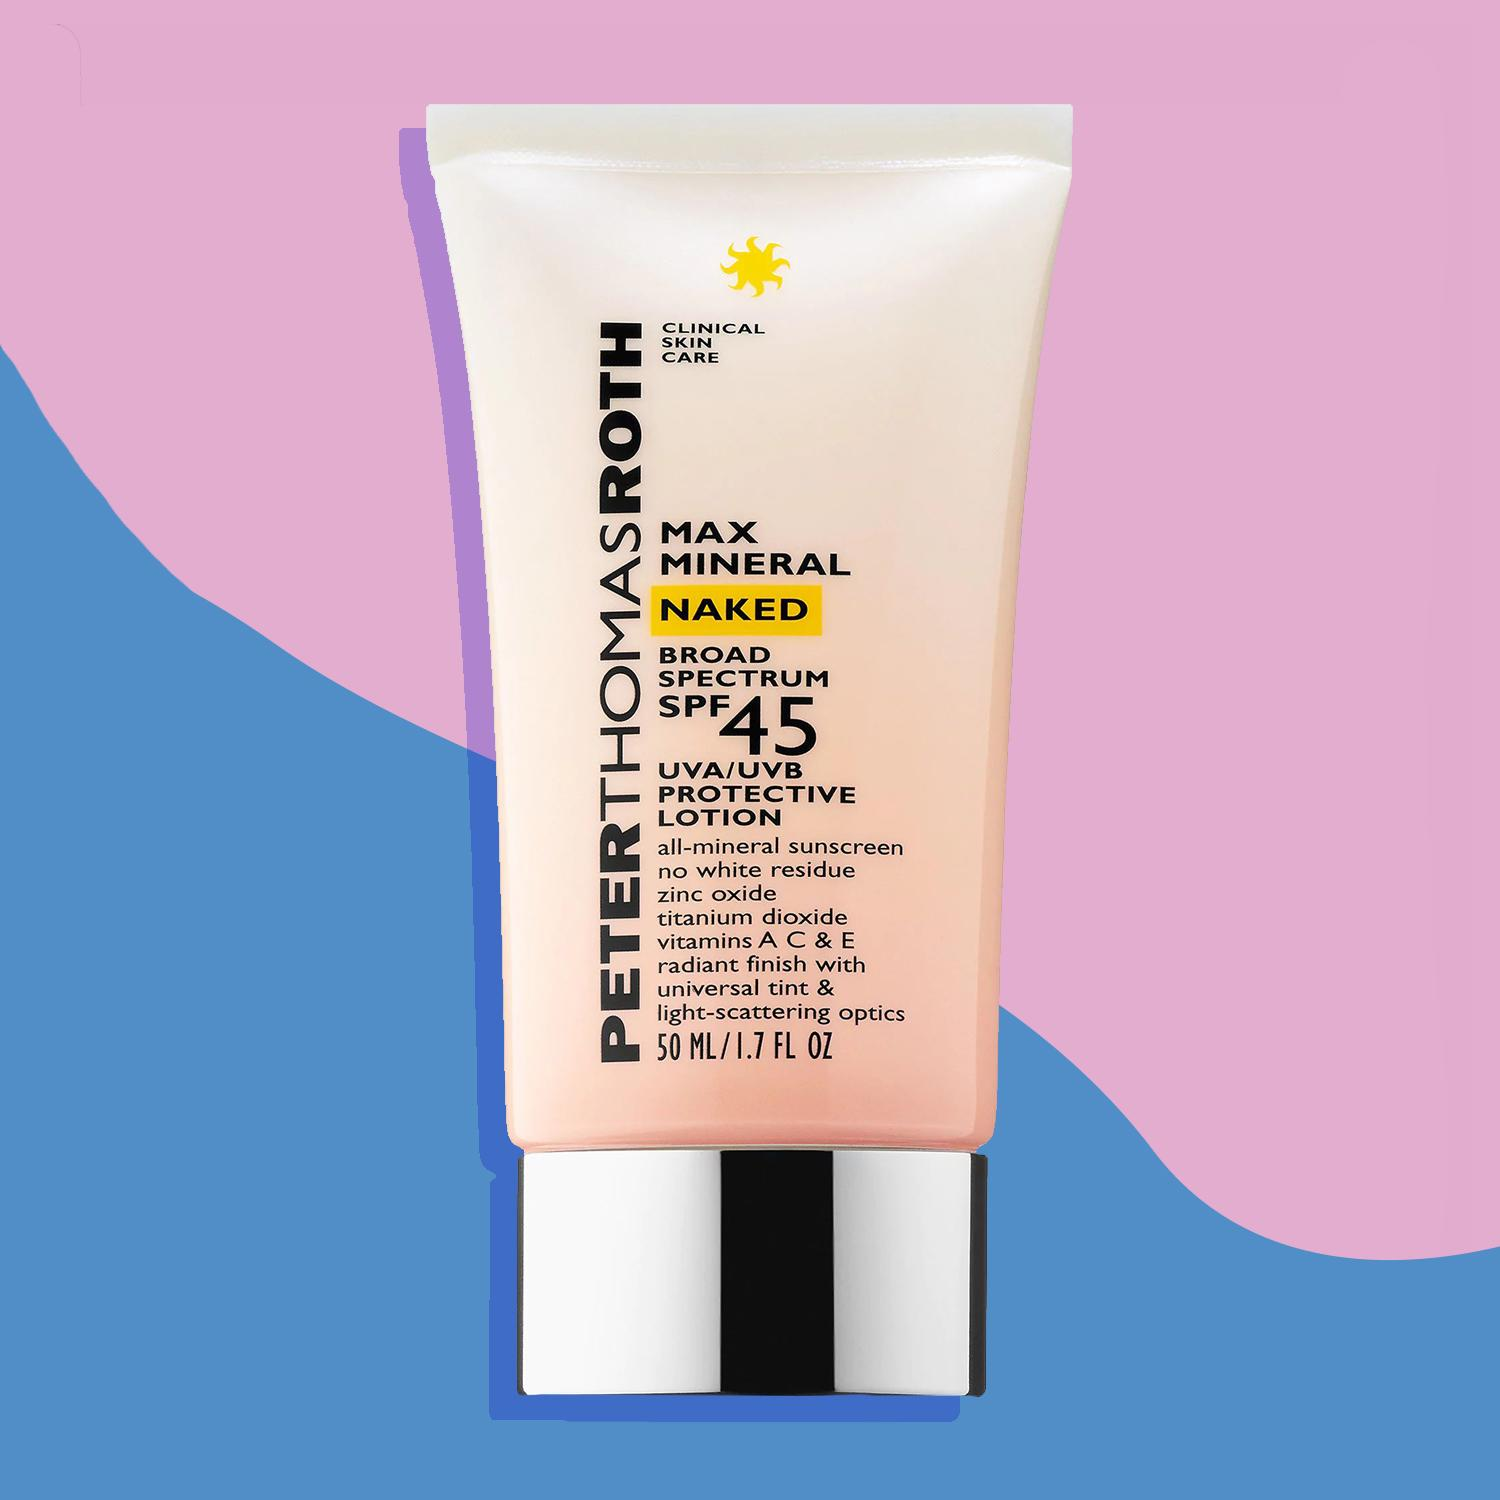 Ive Finally Found the Best Zinc Oxide Sunscreen Out There